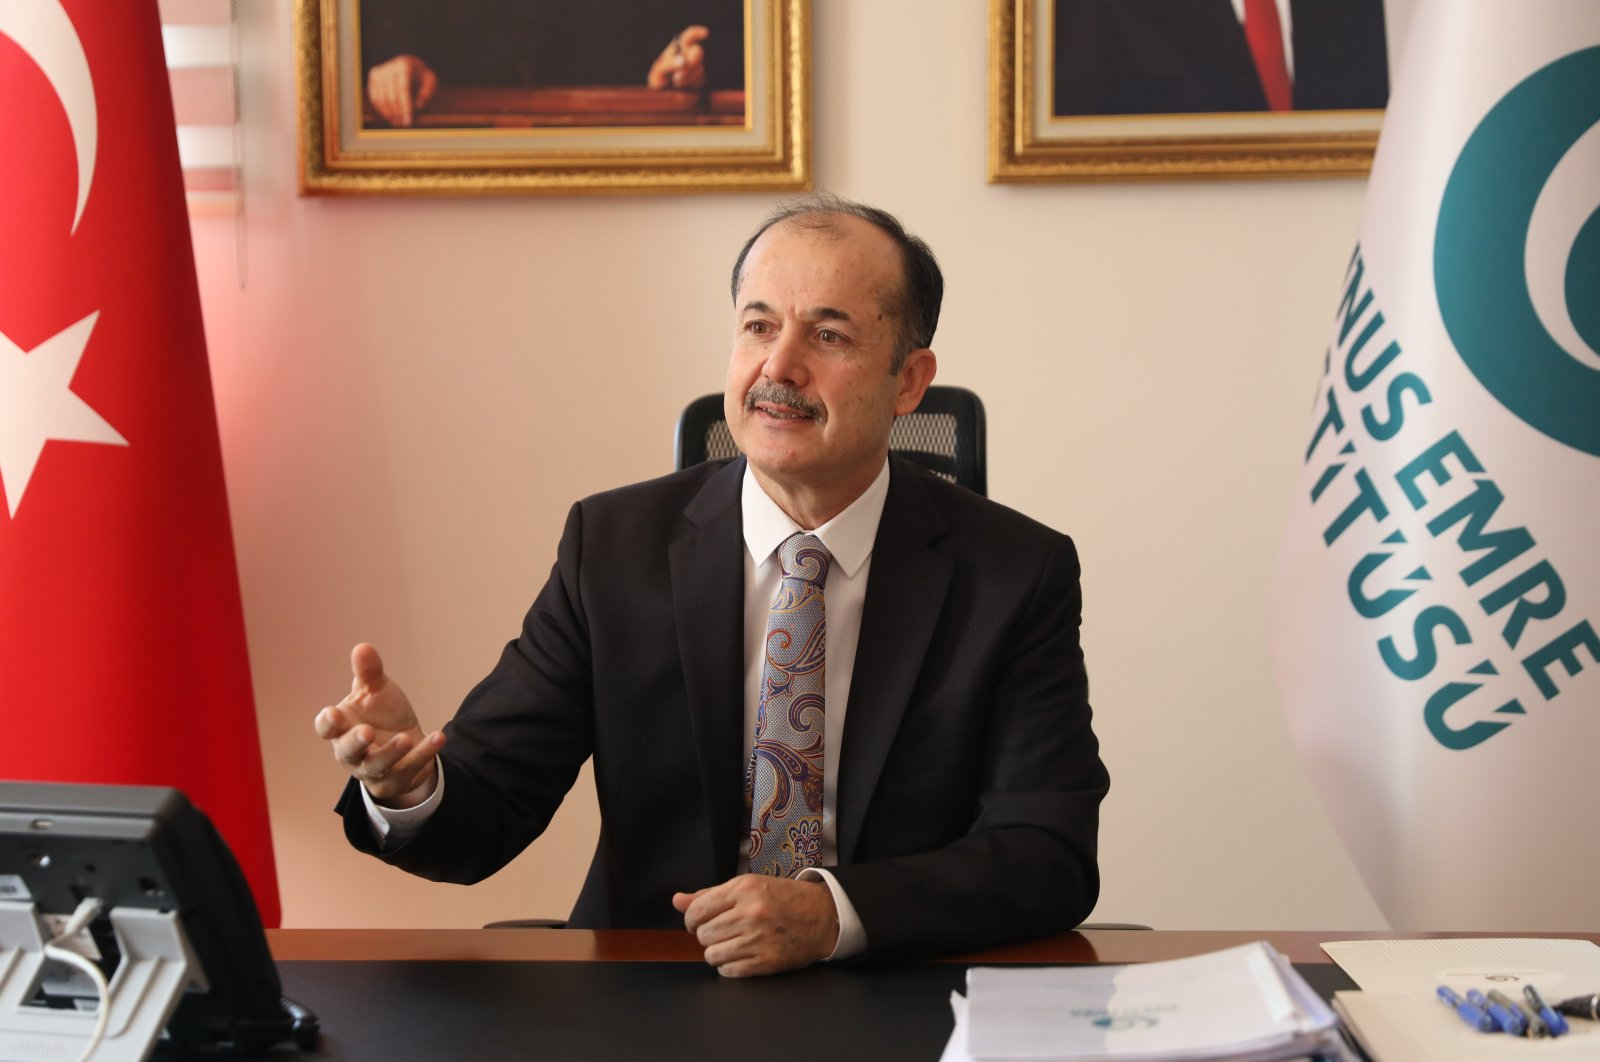 Head of the Yunus Emre Institute (YEE) Şeref Ateş speaking at an interview with Sabah daily in Ankara, Turkey, Dec. 16, 2019 (Sabah Photo)